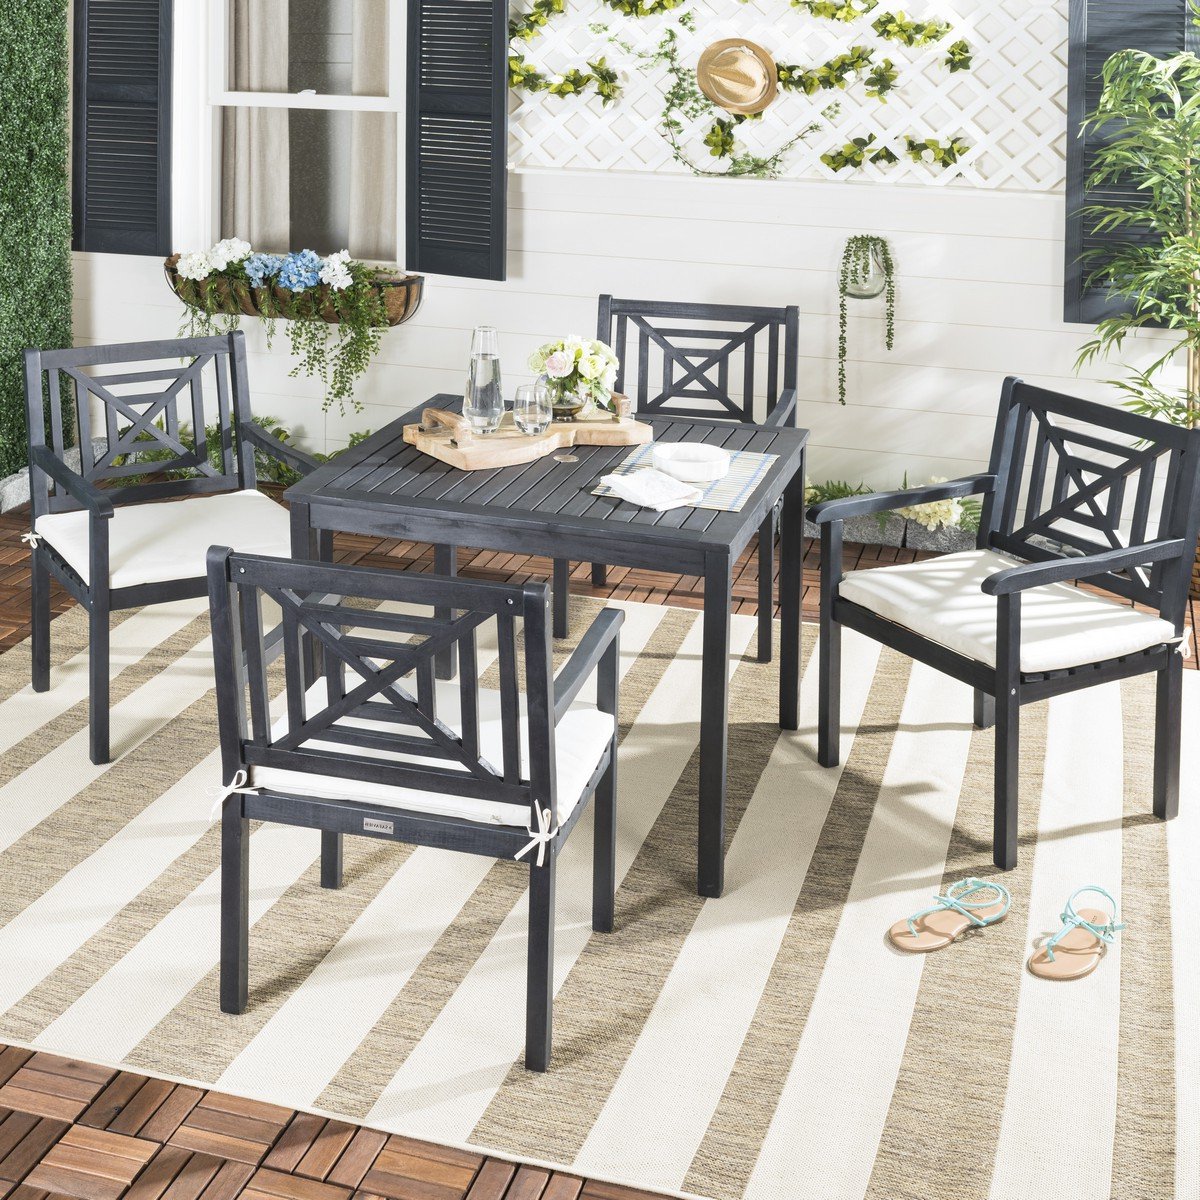 Pat6722K Patio Sets – 5 Piece Outdoor Dining Sets – Furniture Within Most Up To Date Delmar 5 Piece Dining Sets (View 10 of 25)